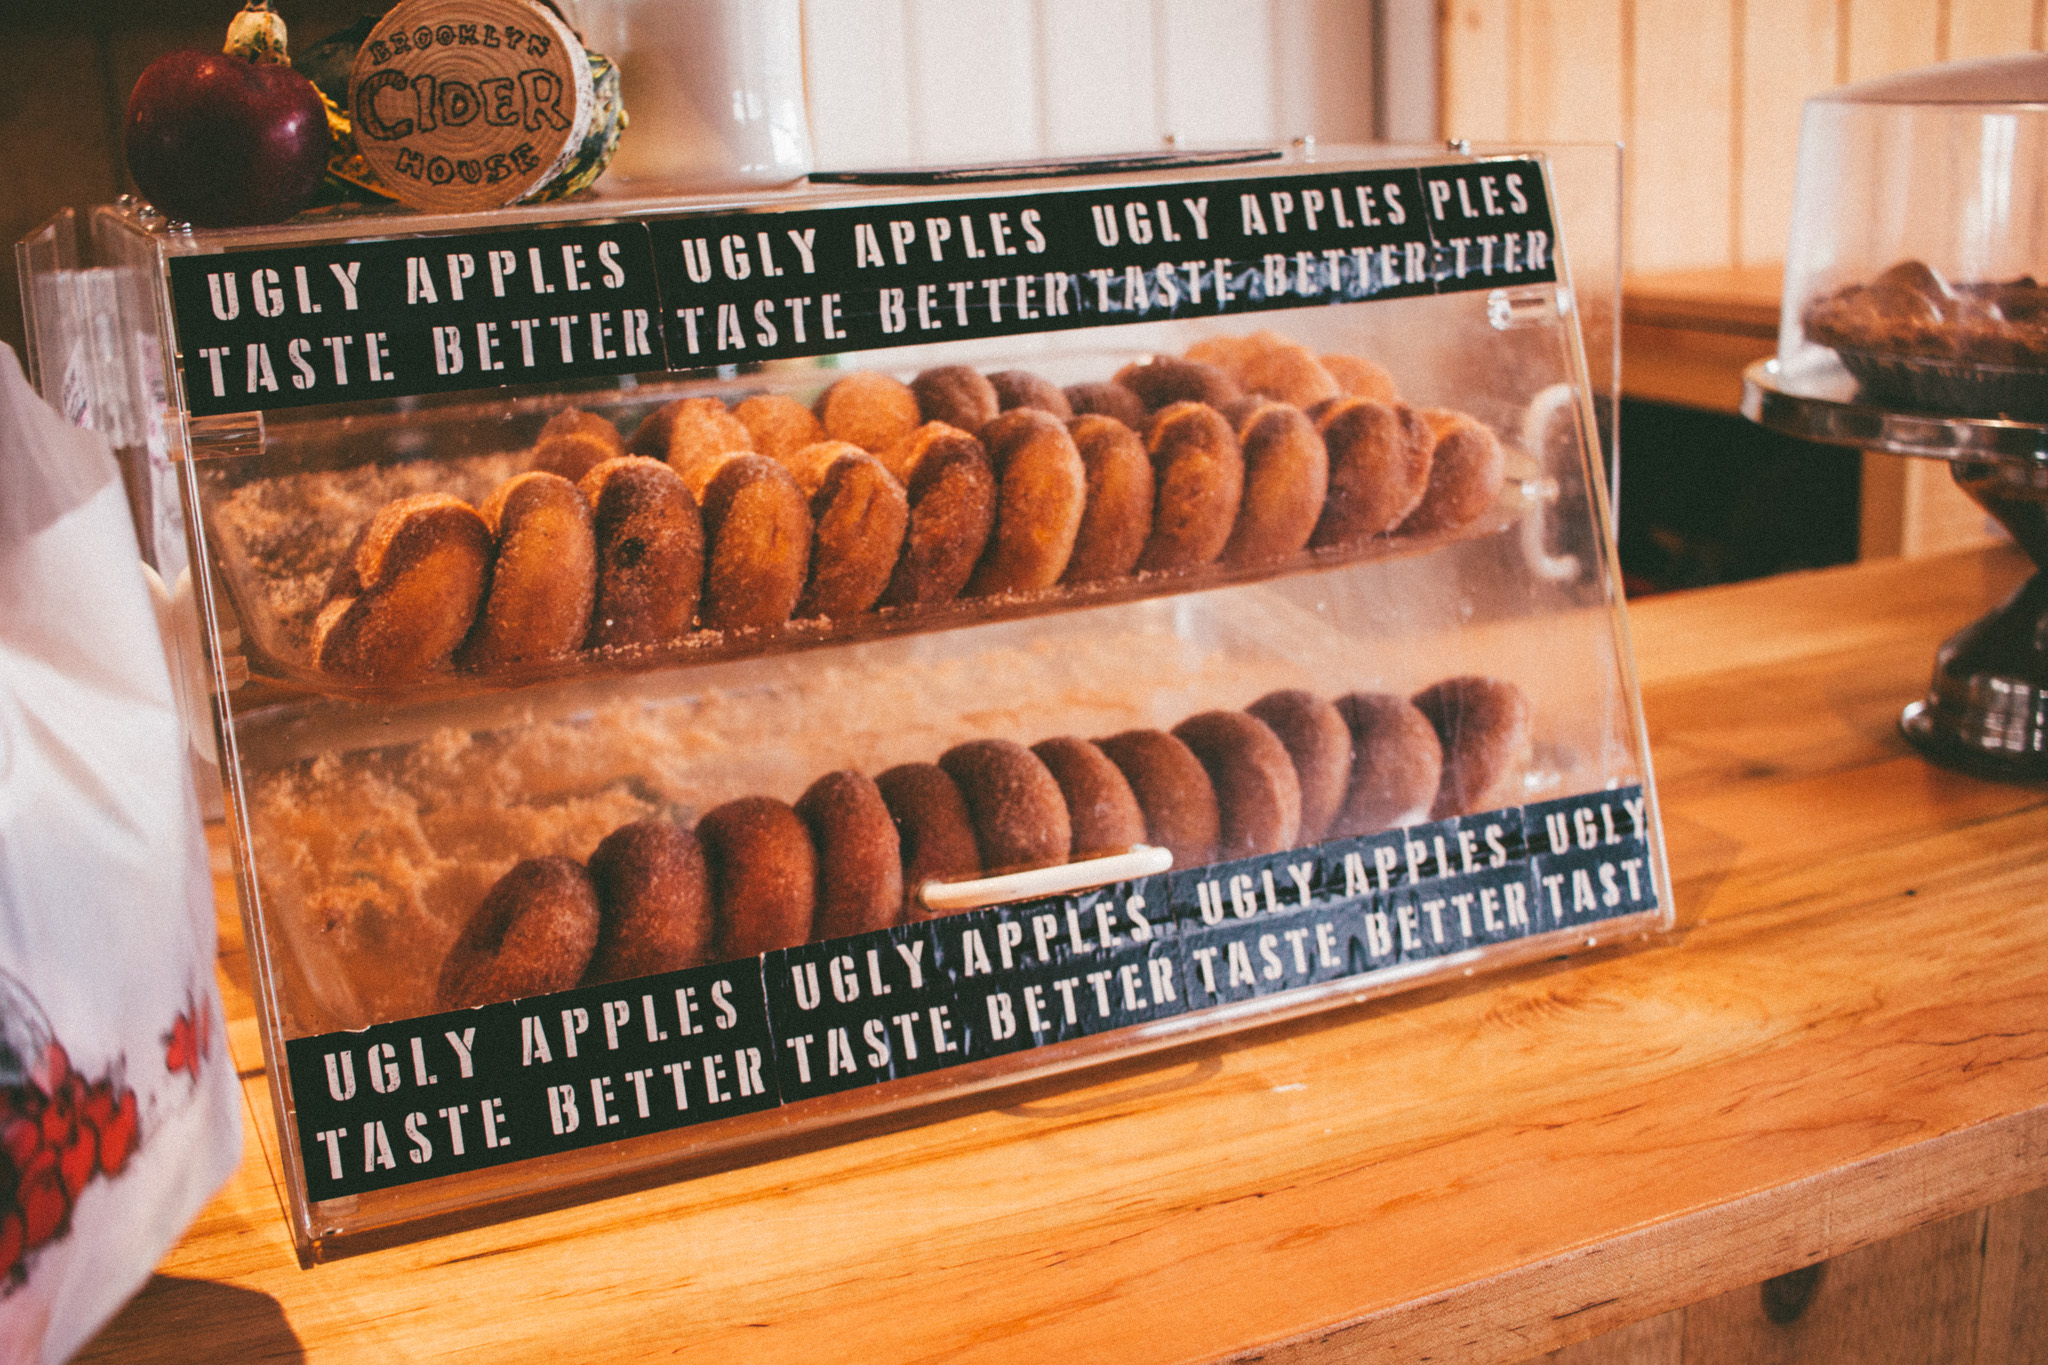 Take a look at those fresh apple cider donuts!